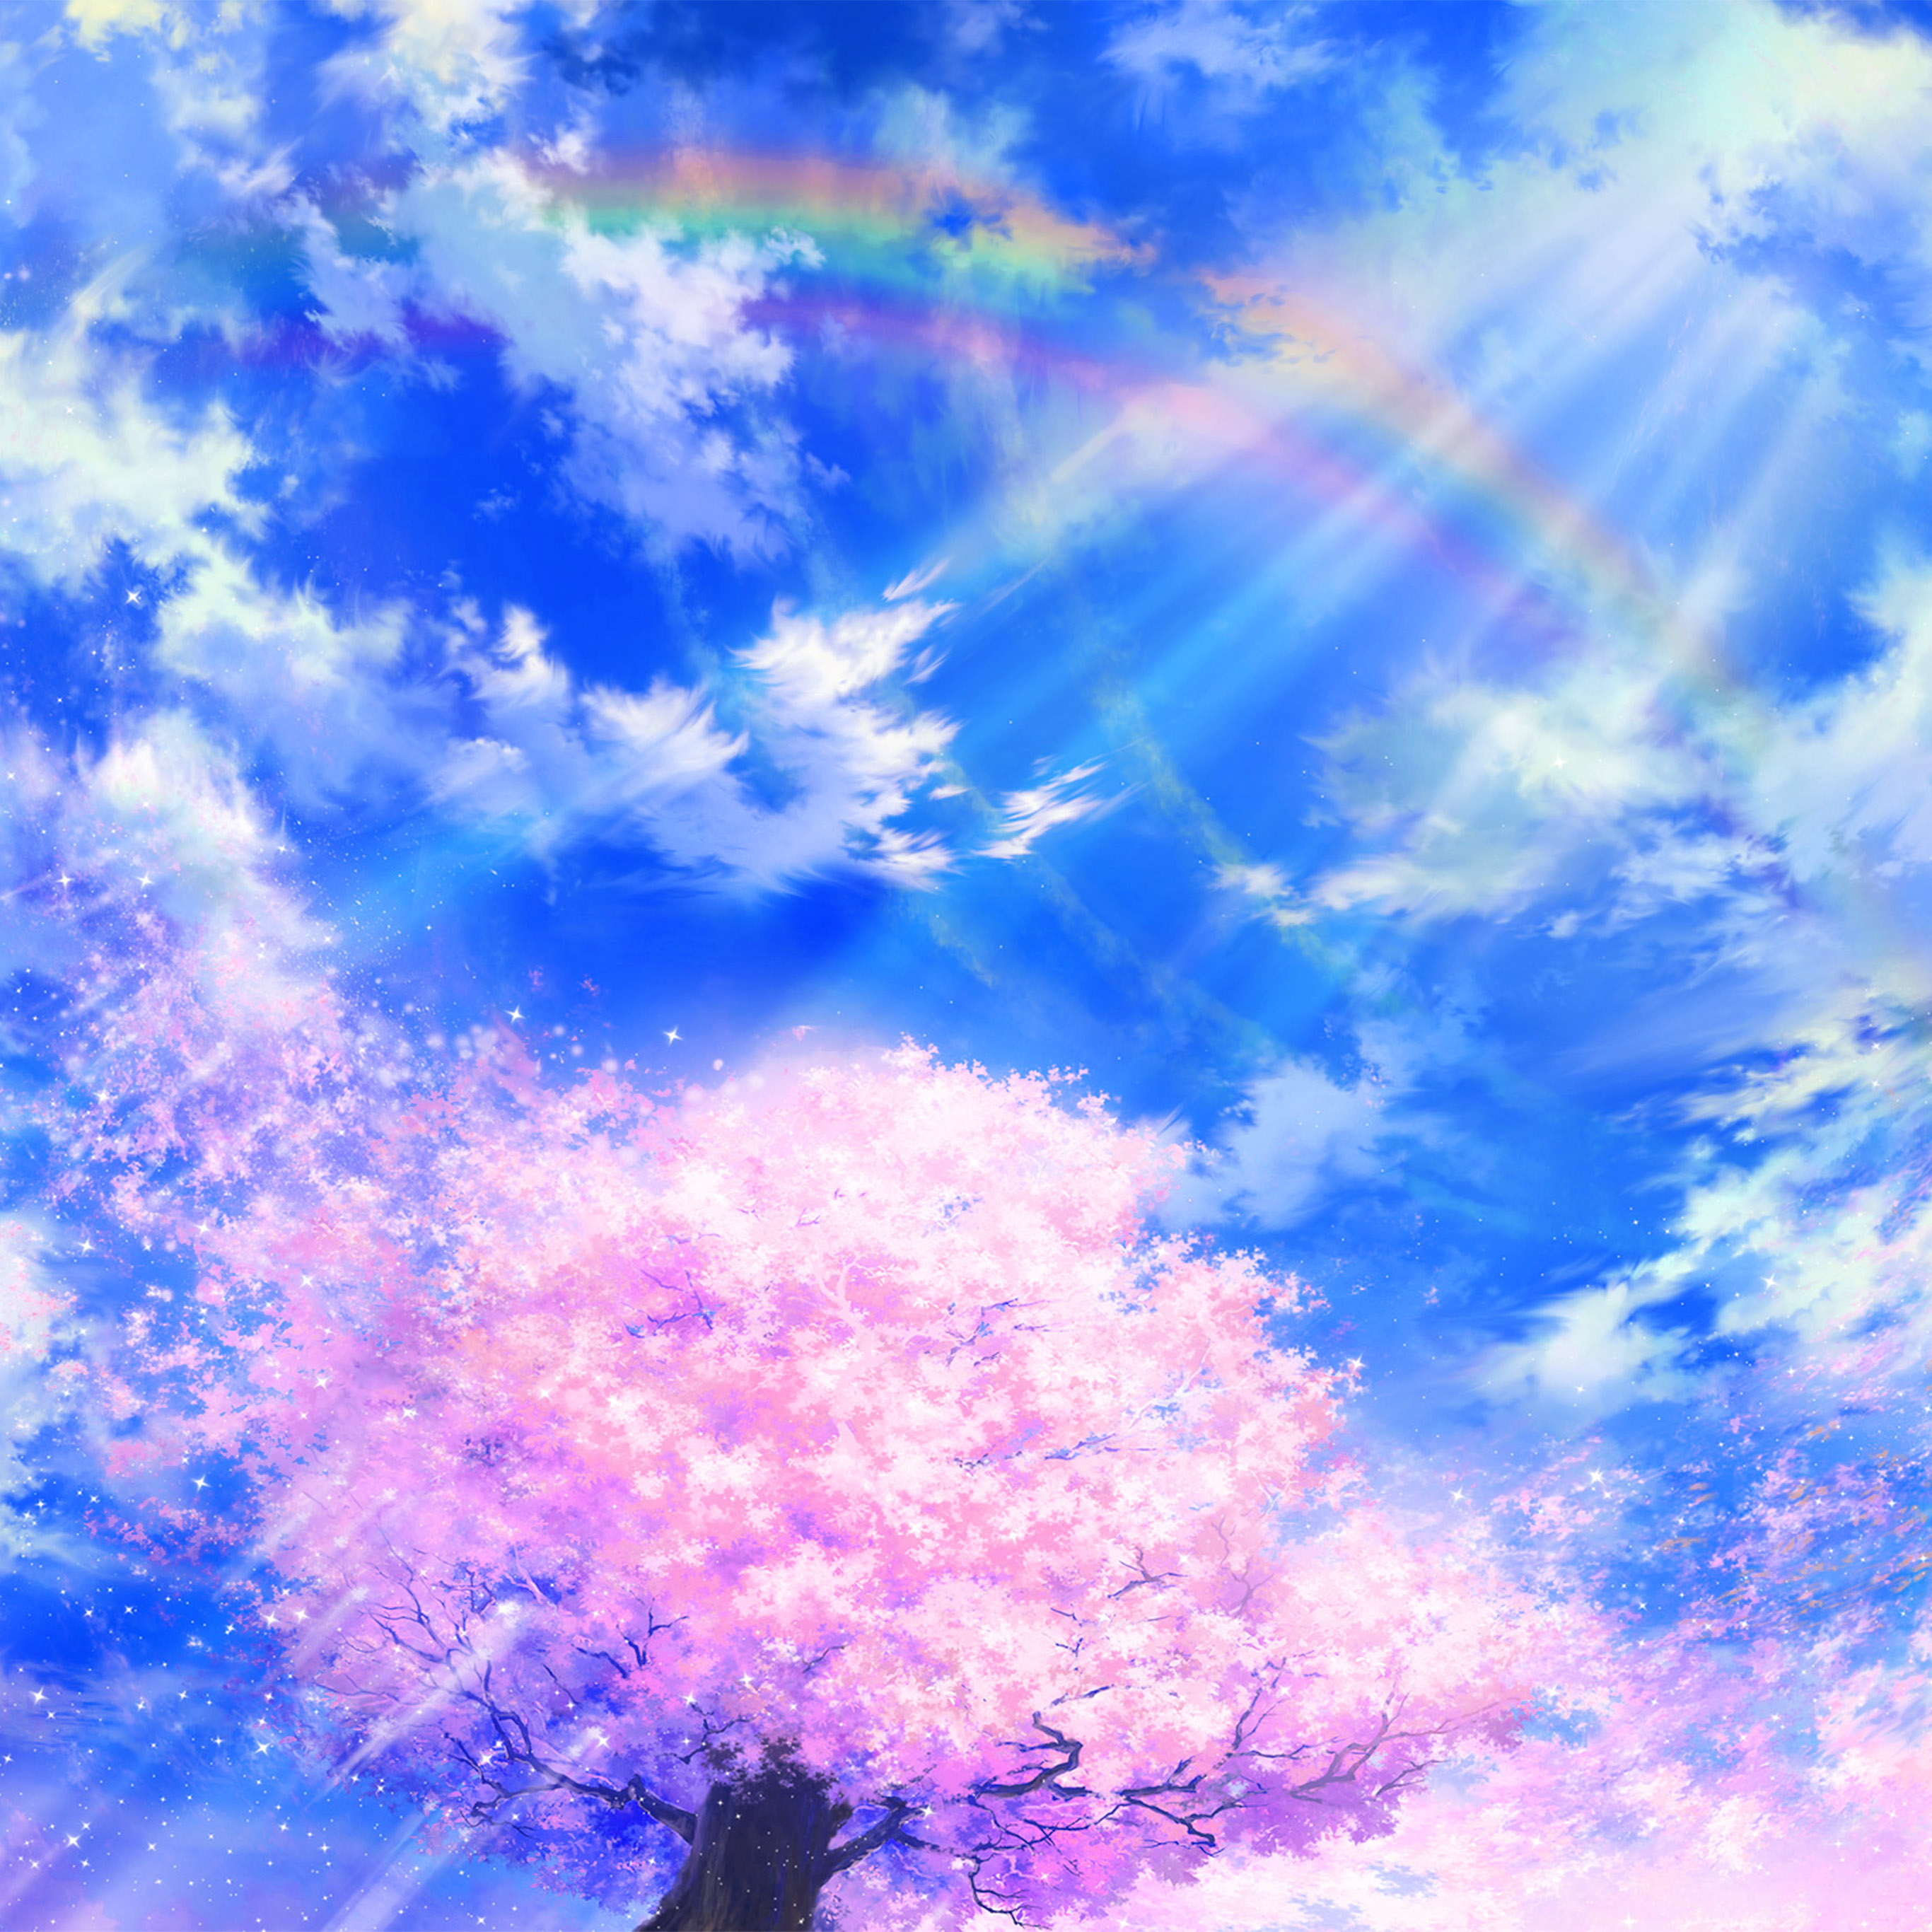 Bd76 Anime Sky Cloud Spring Art Illustration Blue Wallpaper